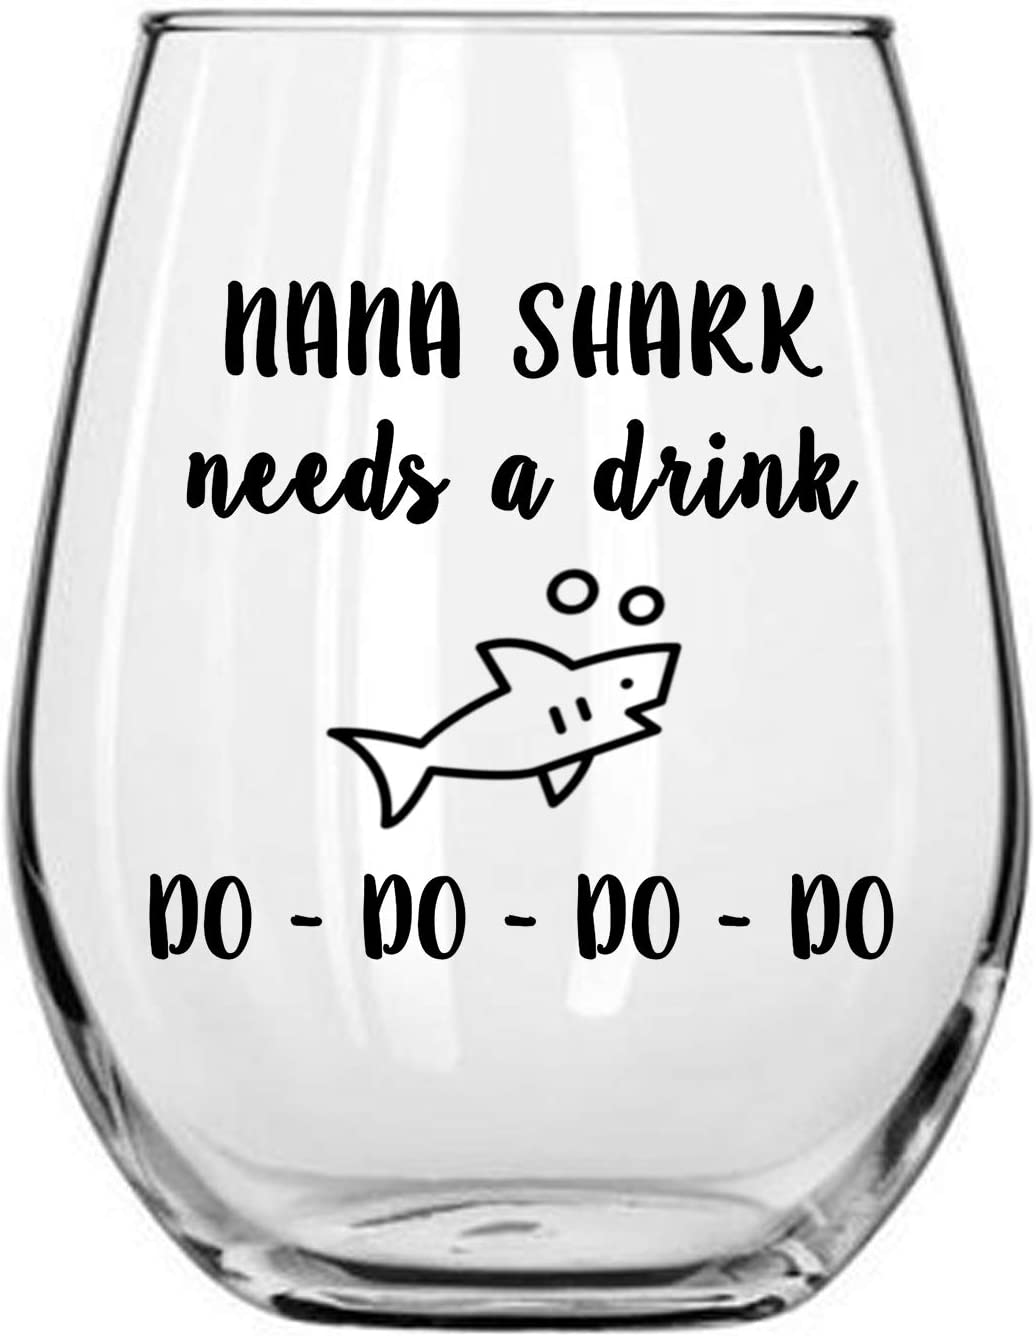 Nana Shark Needs a Drink Do Do Do Do Funny Novelty Libbey Stemless Wine Glass with Sayings - Gifts for Grandmas - Birthday, Christmas, Mothers Day Gifts